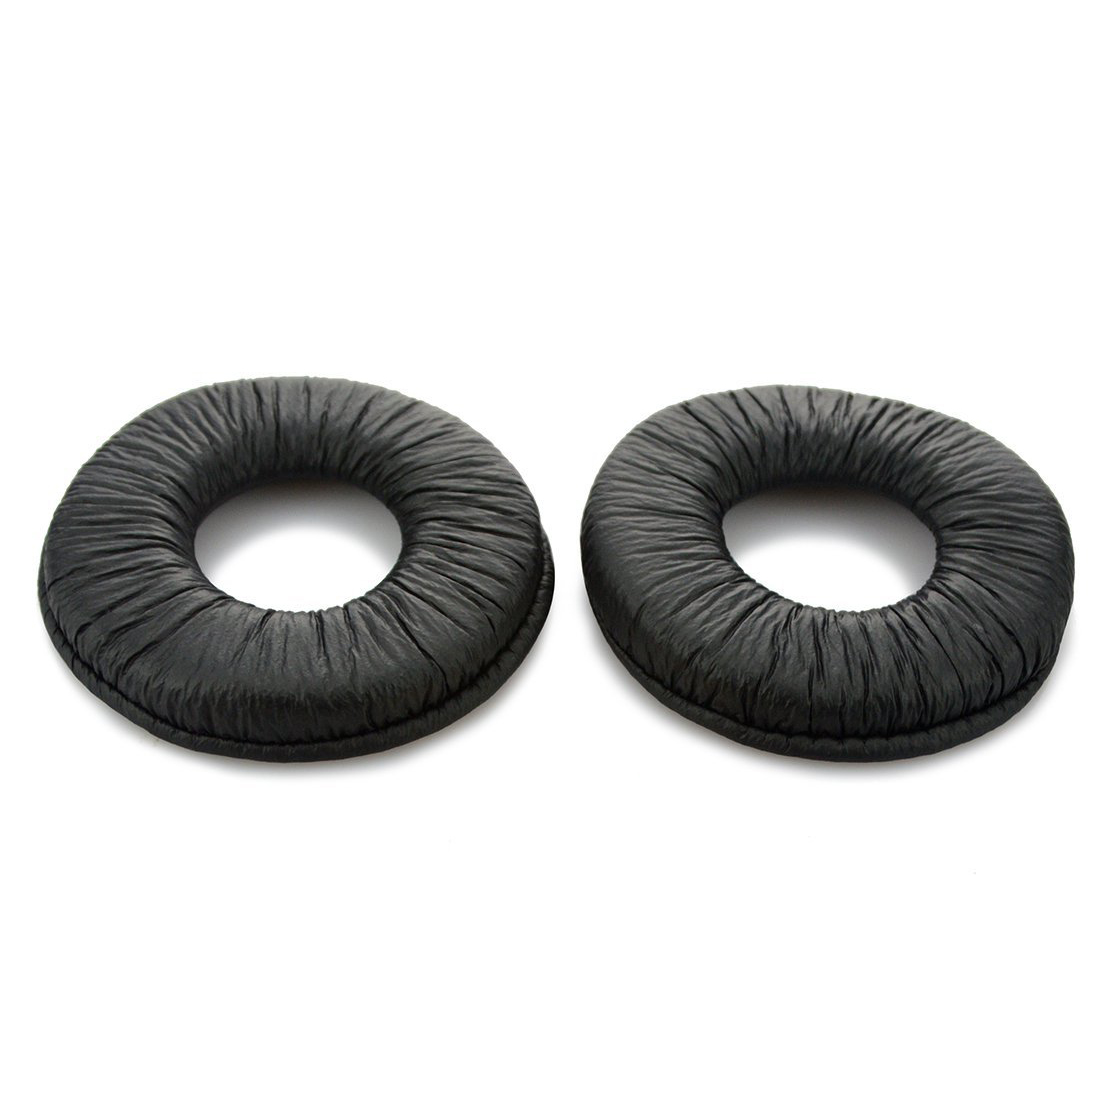 Ear Cover Ear Cushion Ambitious For Sony Mdr-v150 V200 V250 V300 V400 Zx300 Headphone Replacement Ear Pad Ear Cups Earpads Repai